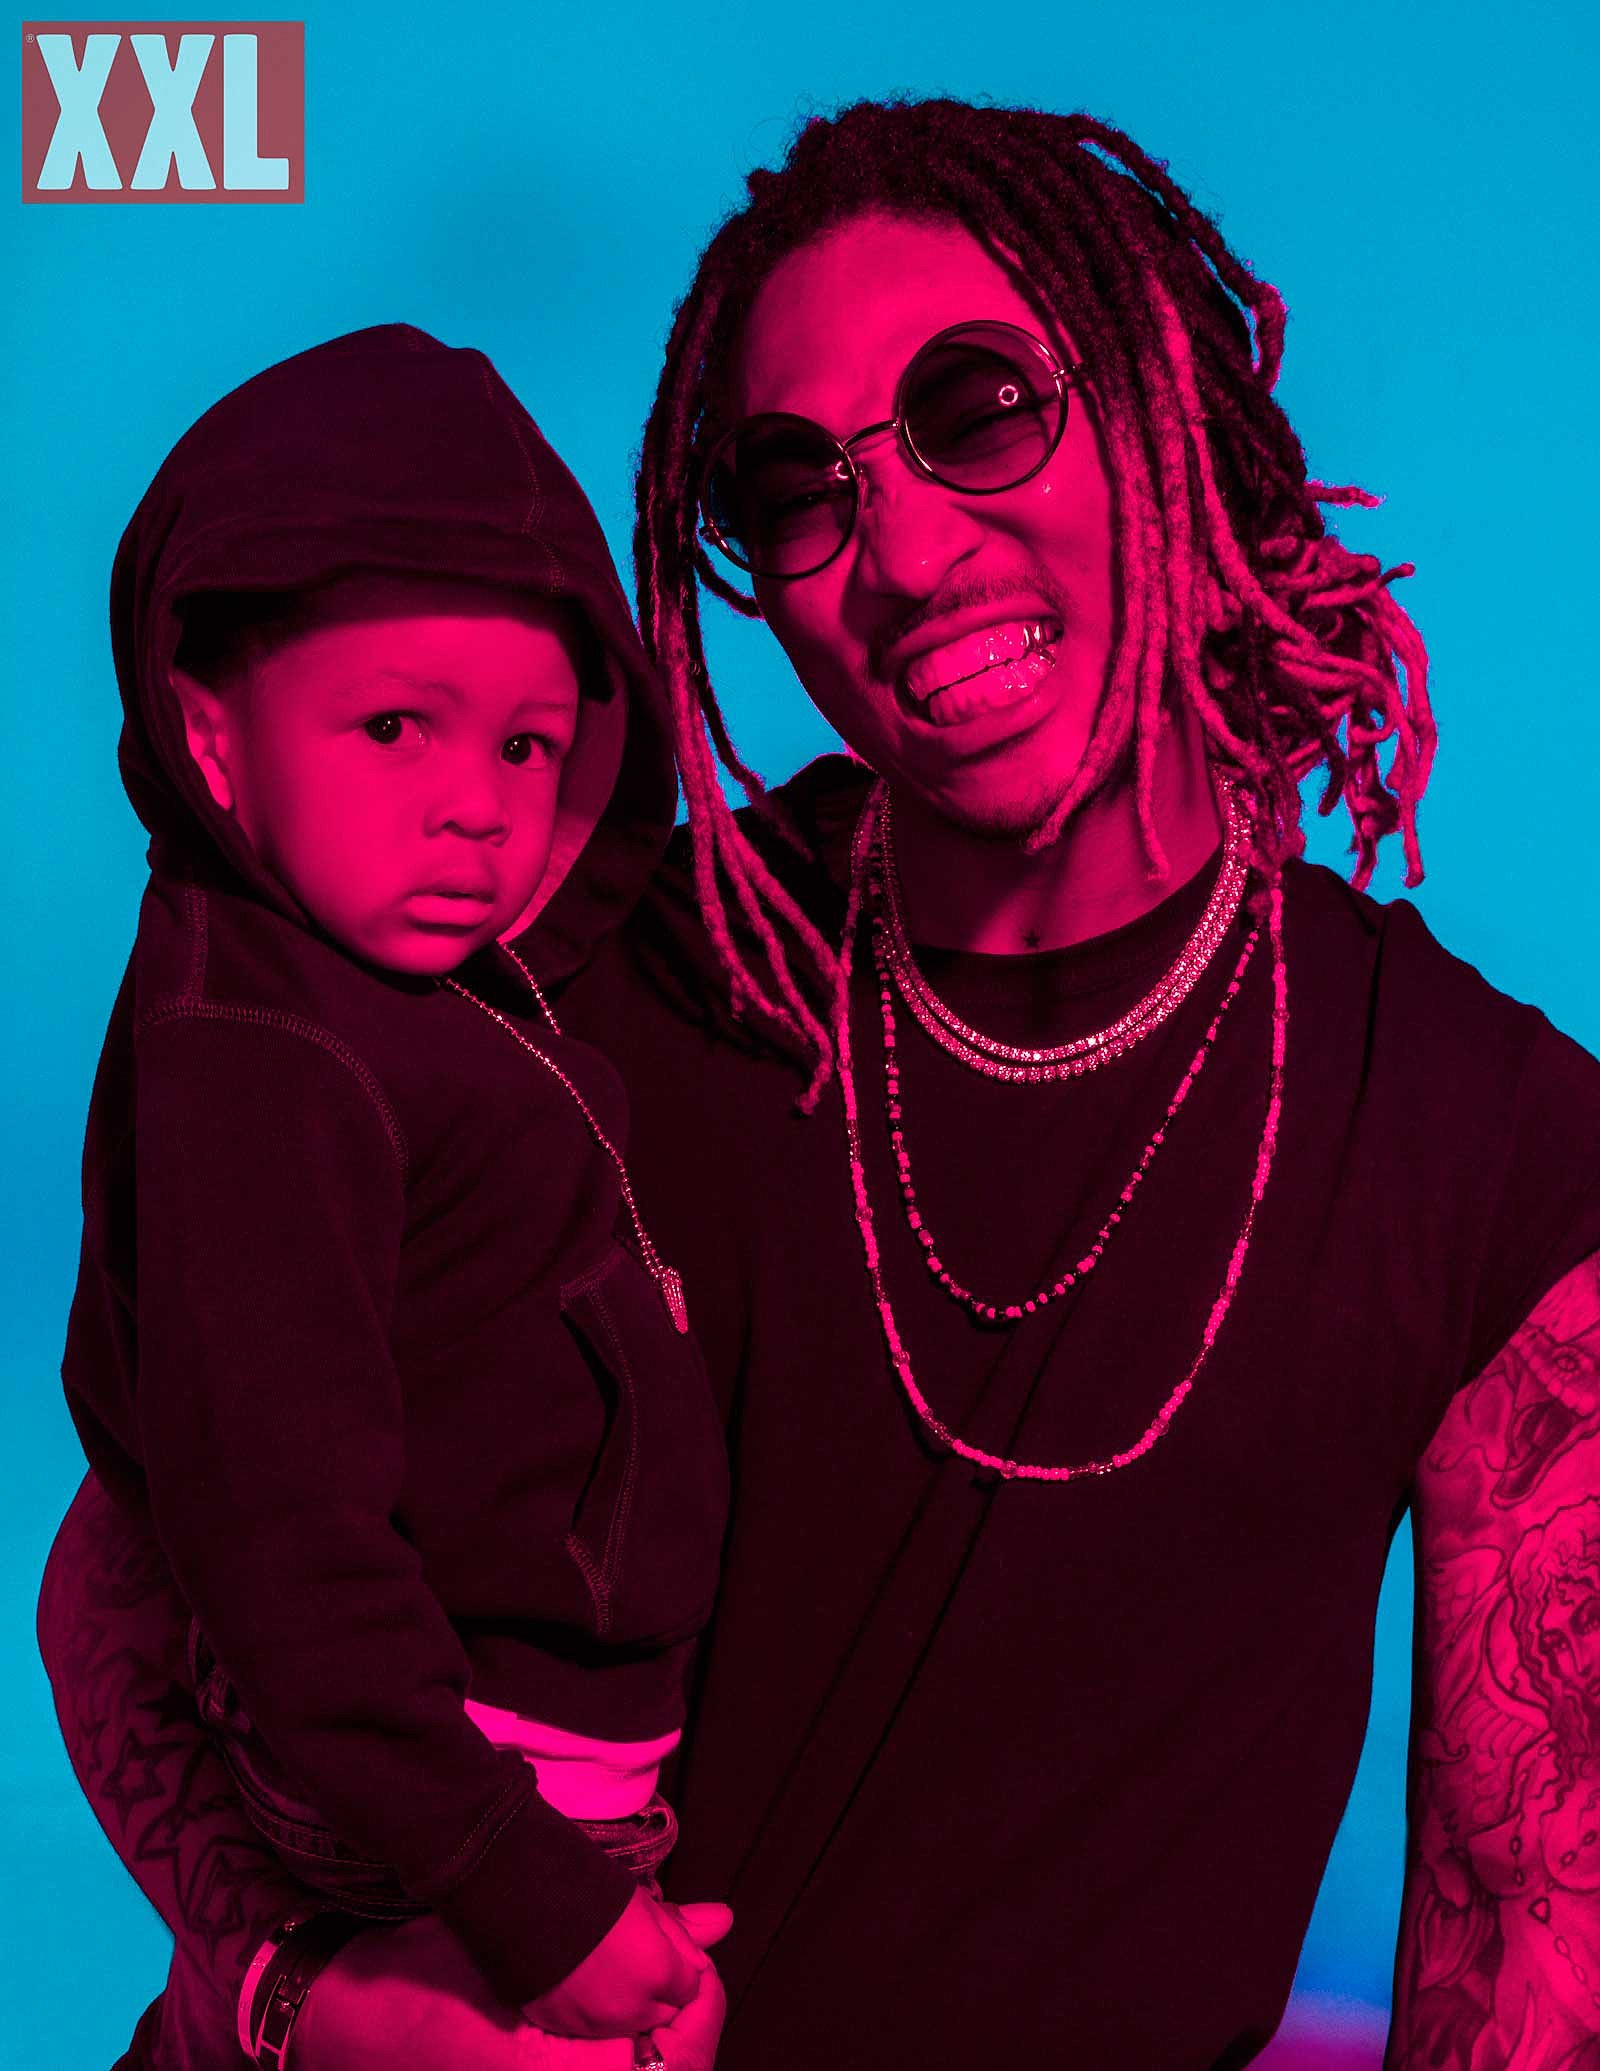 The Rising: Future's XXL Cover Story - XXL